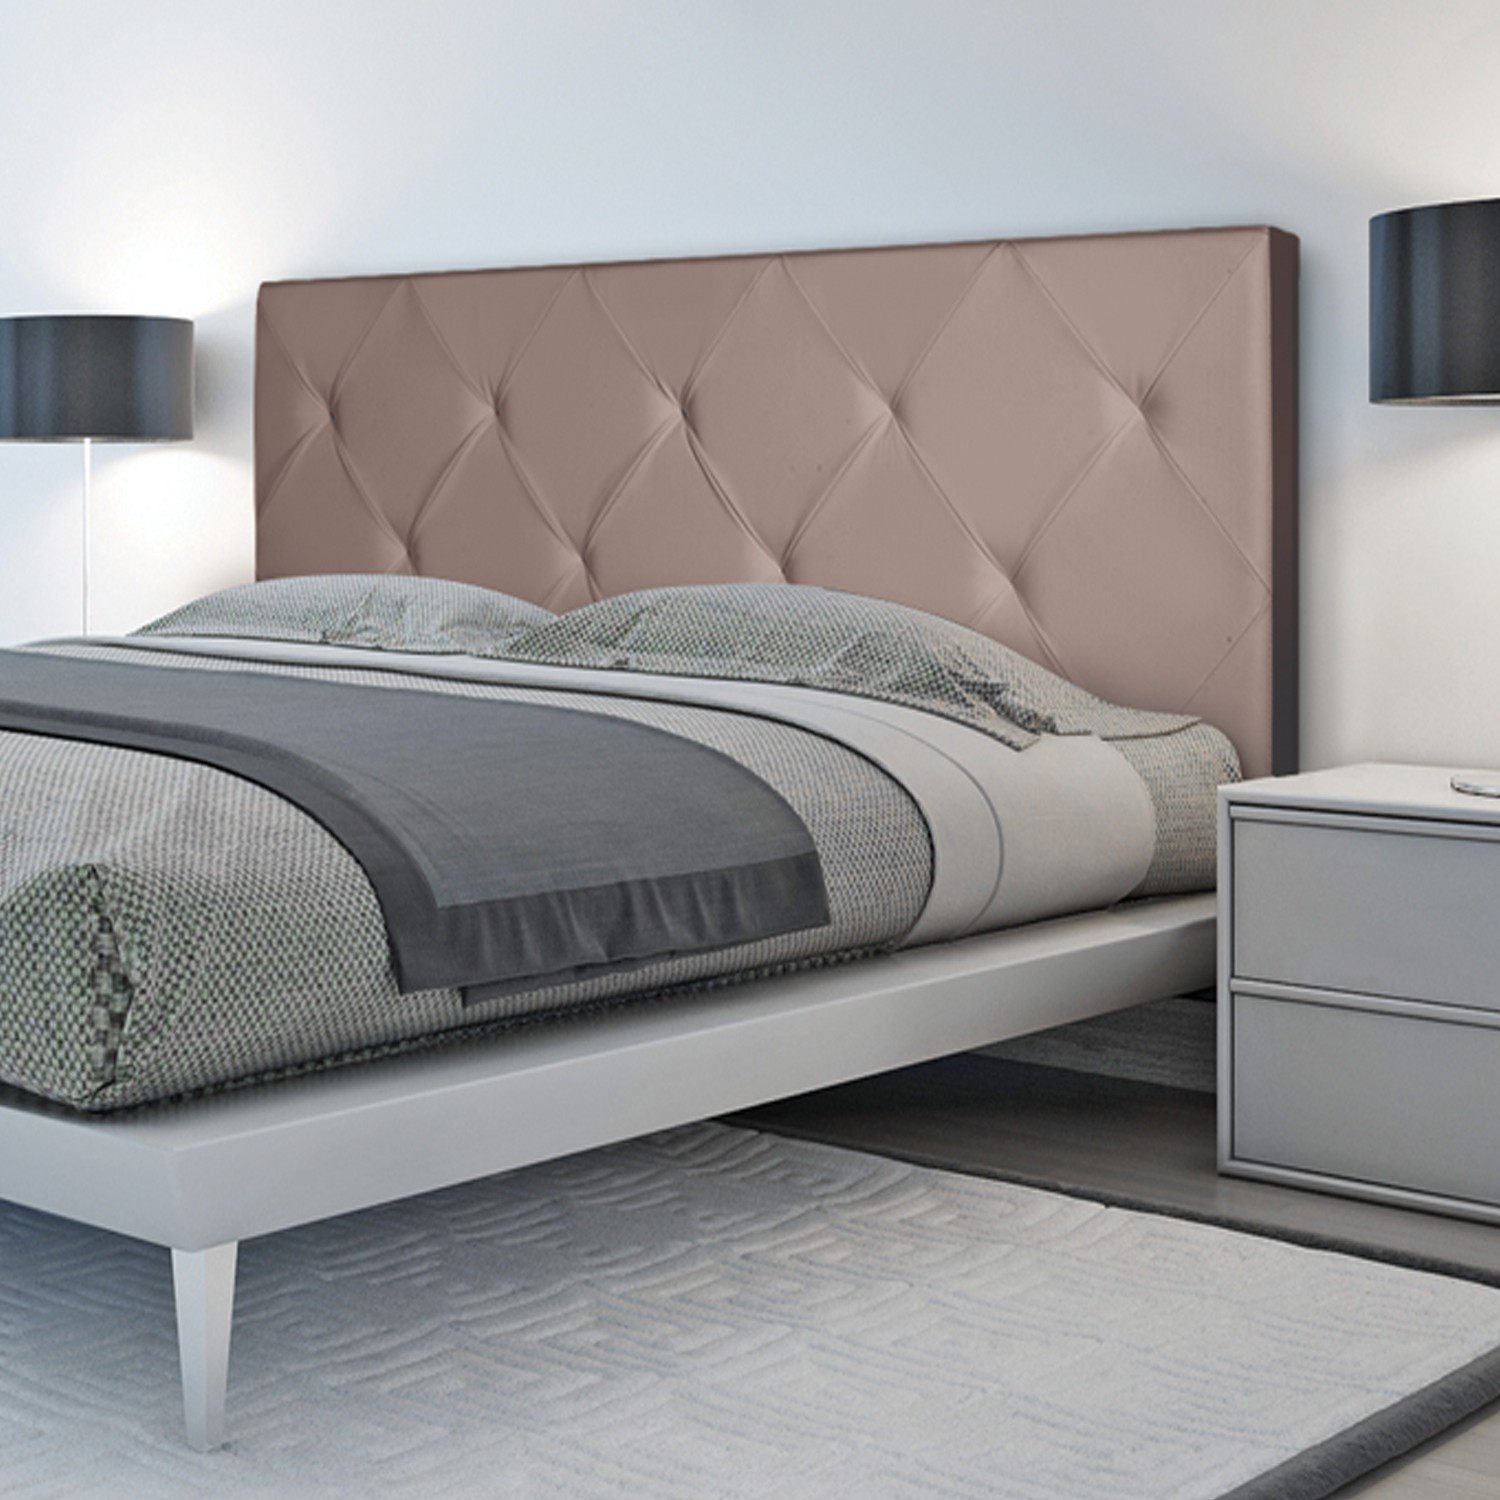 t te de lit capitonn e pvc taupe 160x58 cm imprim 14. Black Bedroom Furniture Sets. Home Design Ideas